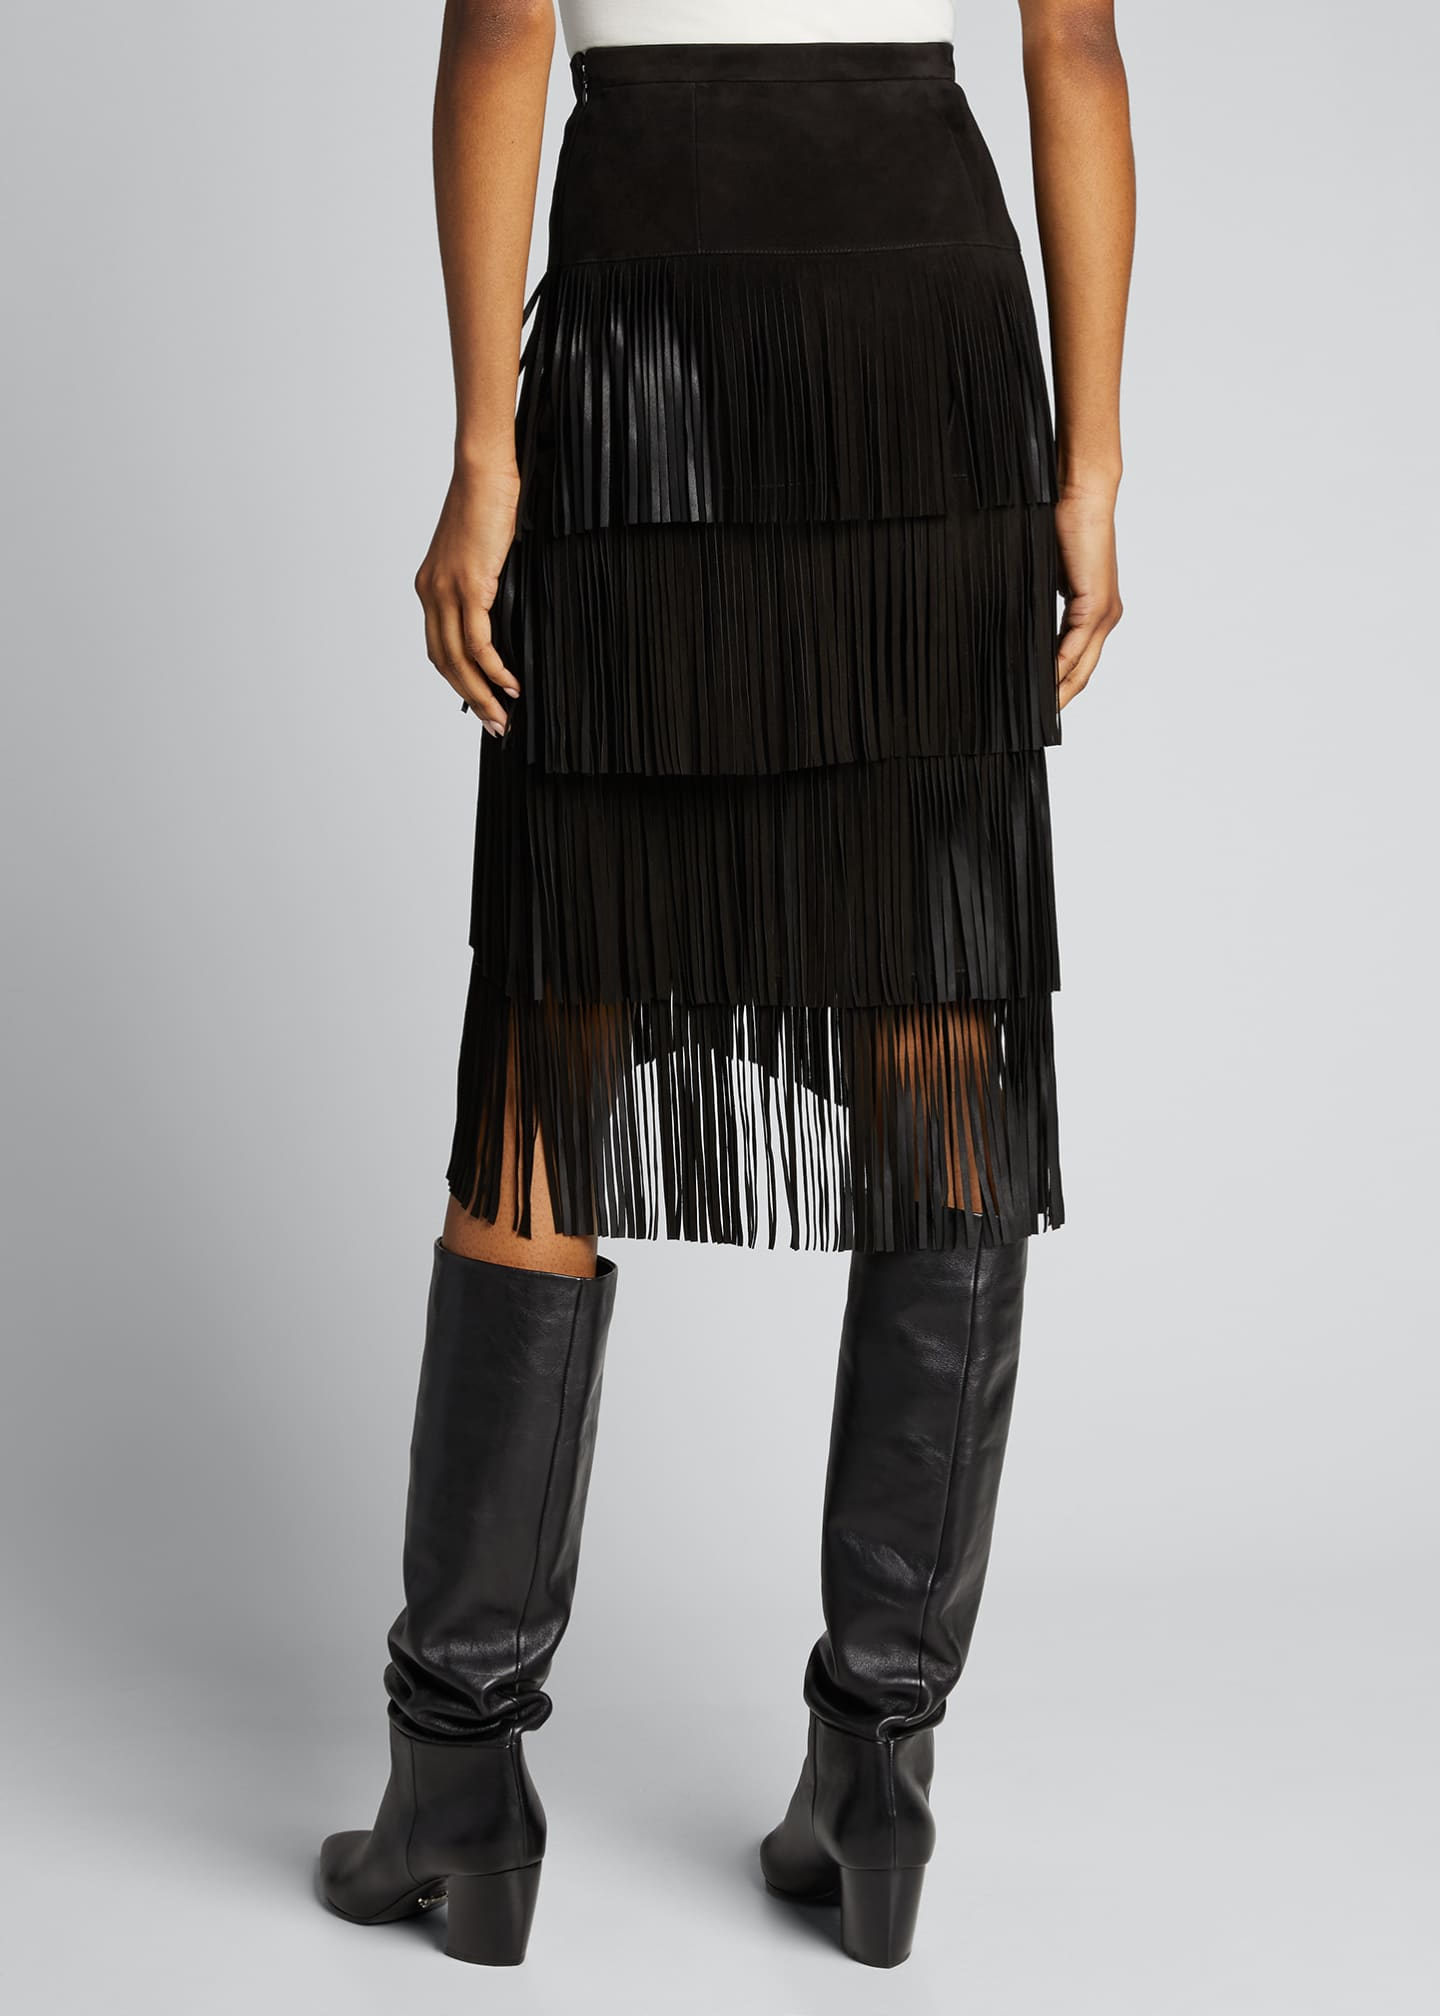 Image 2 of 5: Fringed Suede Pencil Skirt